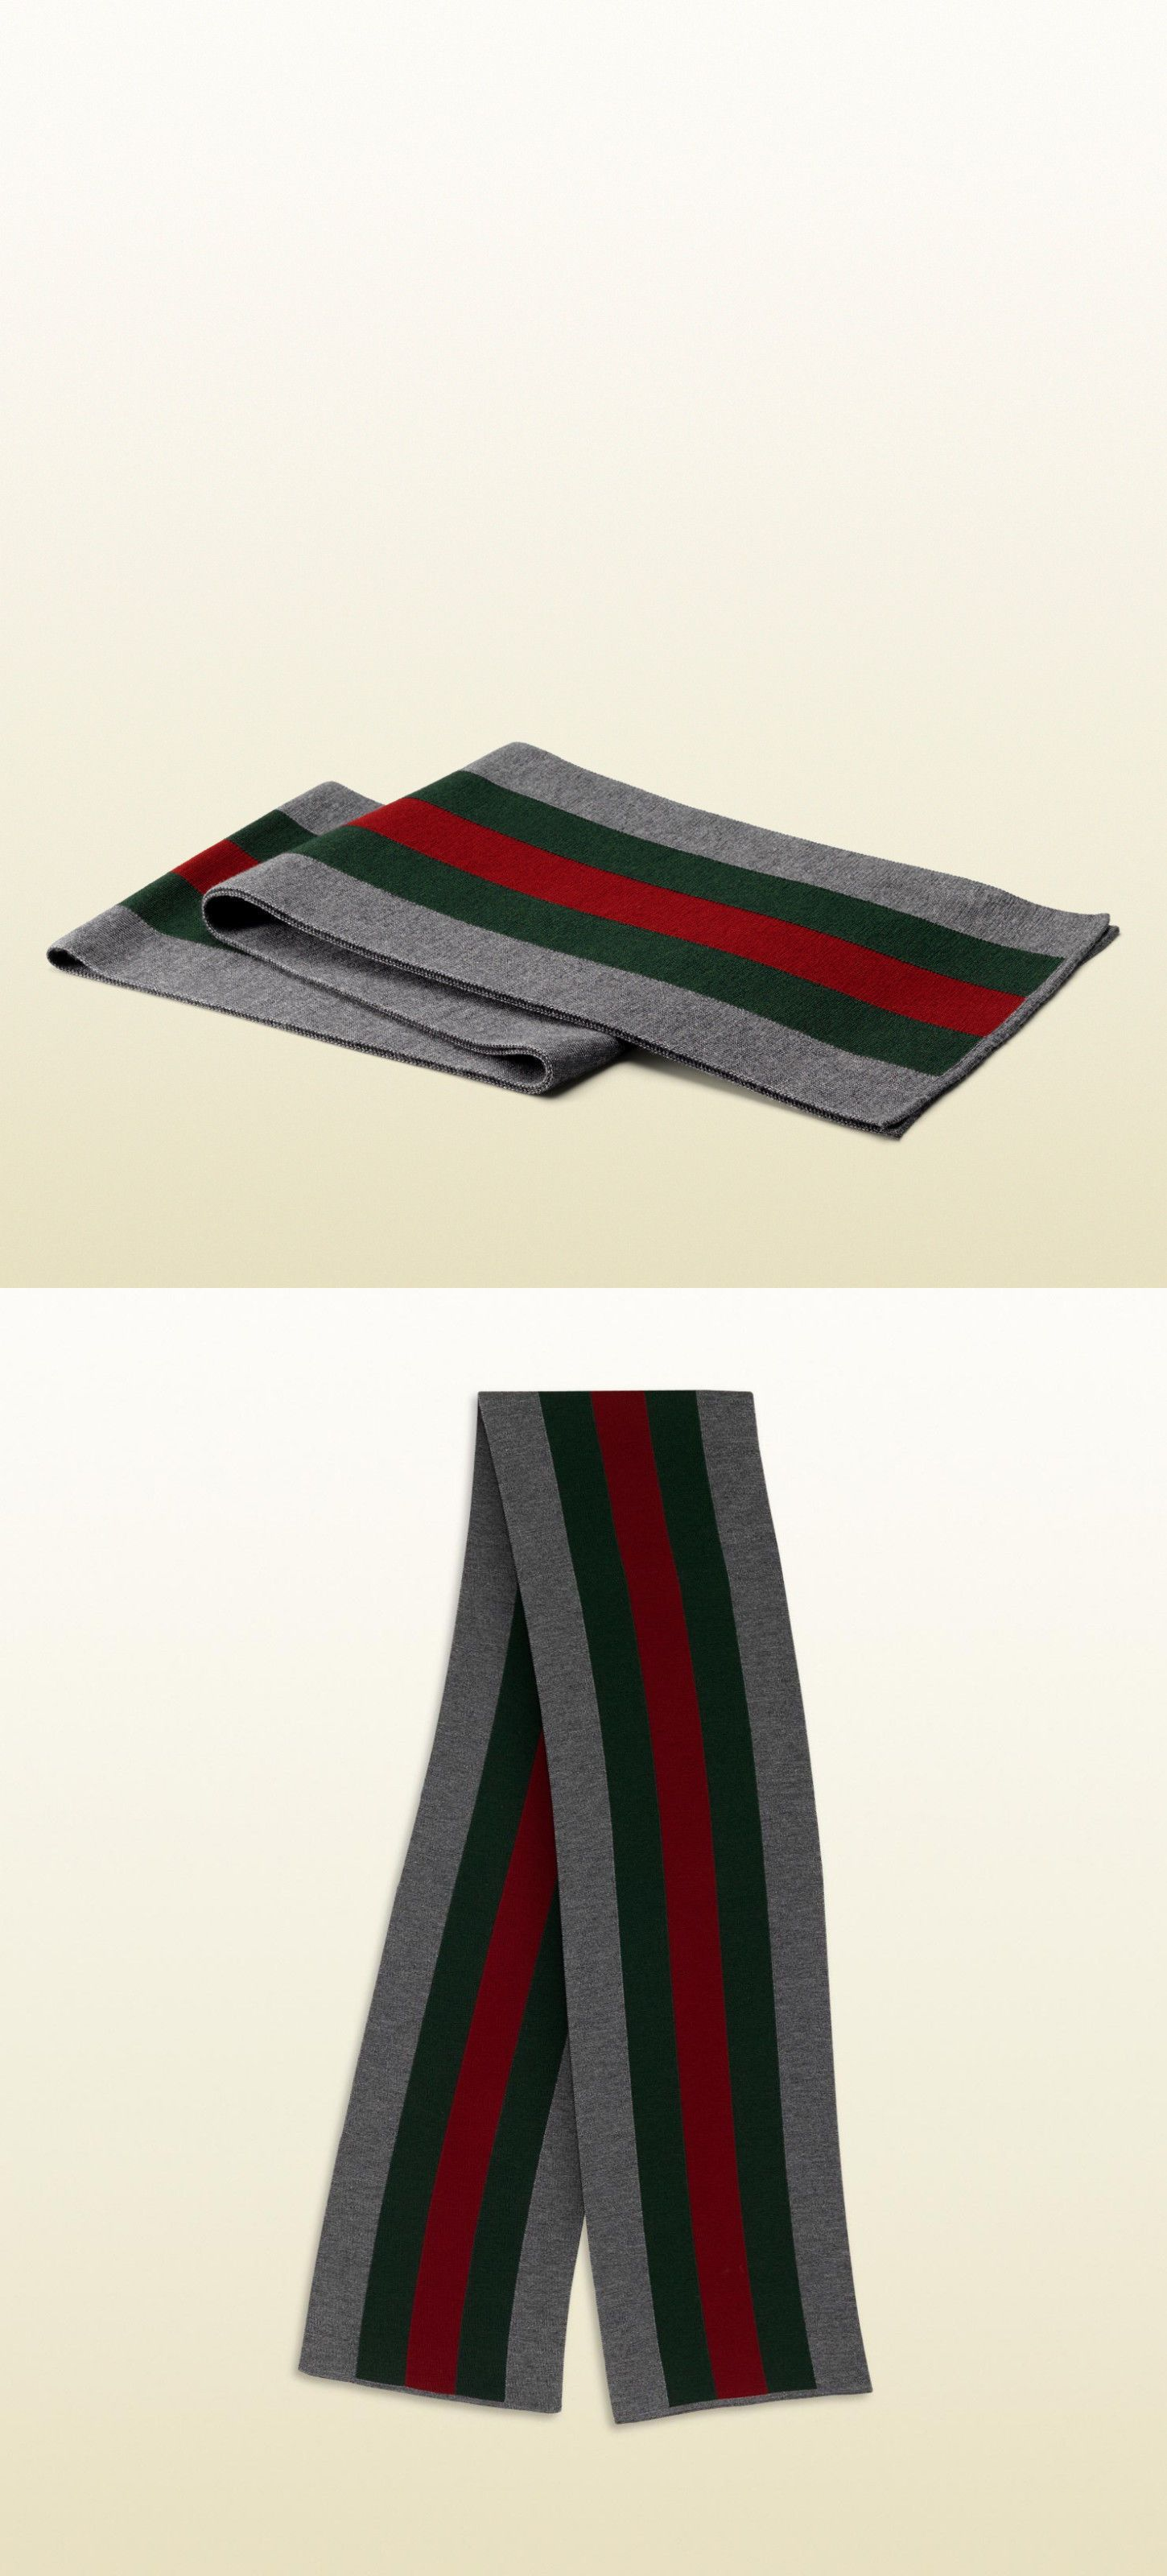 b0263e09d Scarves 52382: Gray Gucci Scarf Original Classic Stripe Green Red Wool  Winter Mens Womens Web -> BUY IT NOW ONLY: $148.99 on eBay!